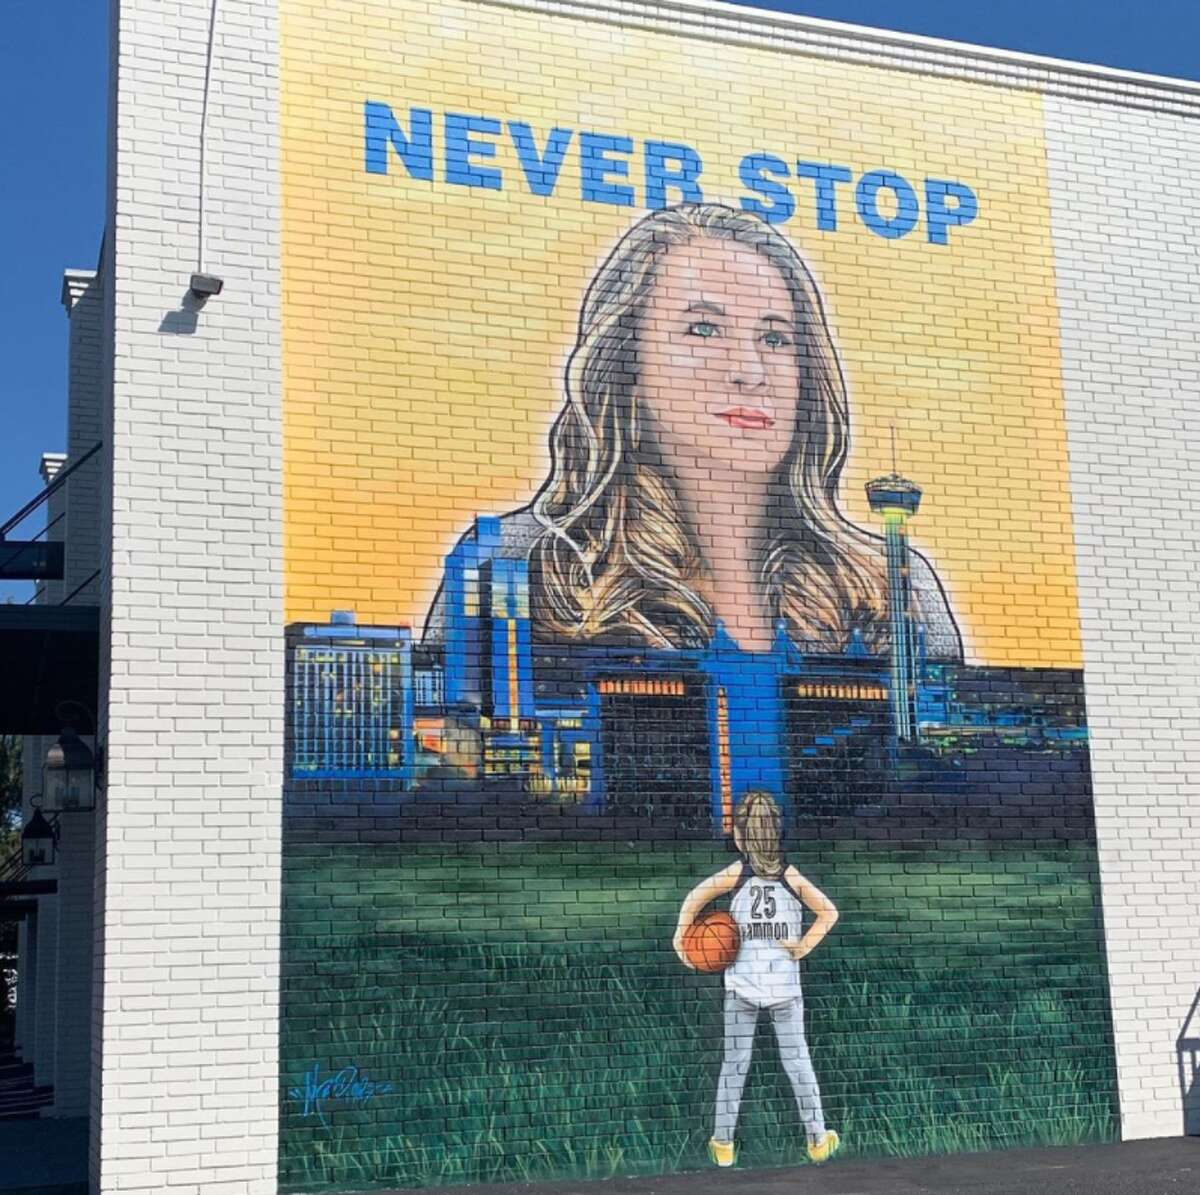 If you're driving down Broadway, you will now see a massive mural featuring San Antonio Spurs assistant coach Becky Hammon in a neighborhood near Lincoln Heights.